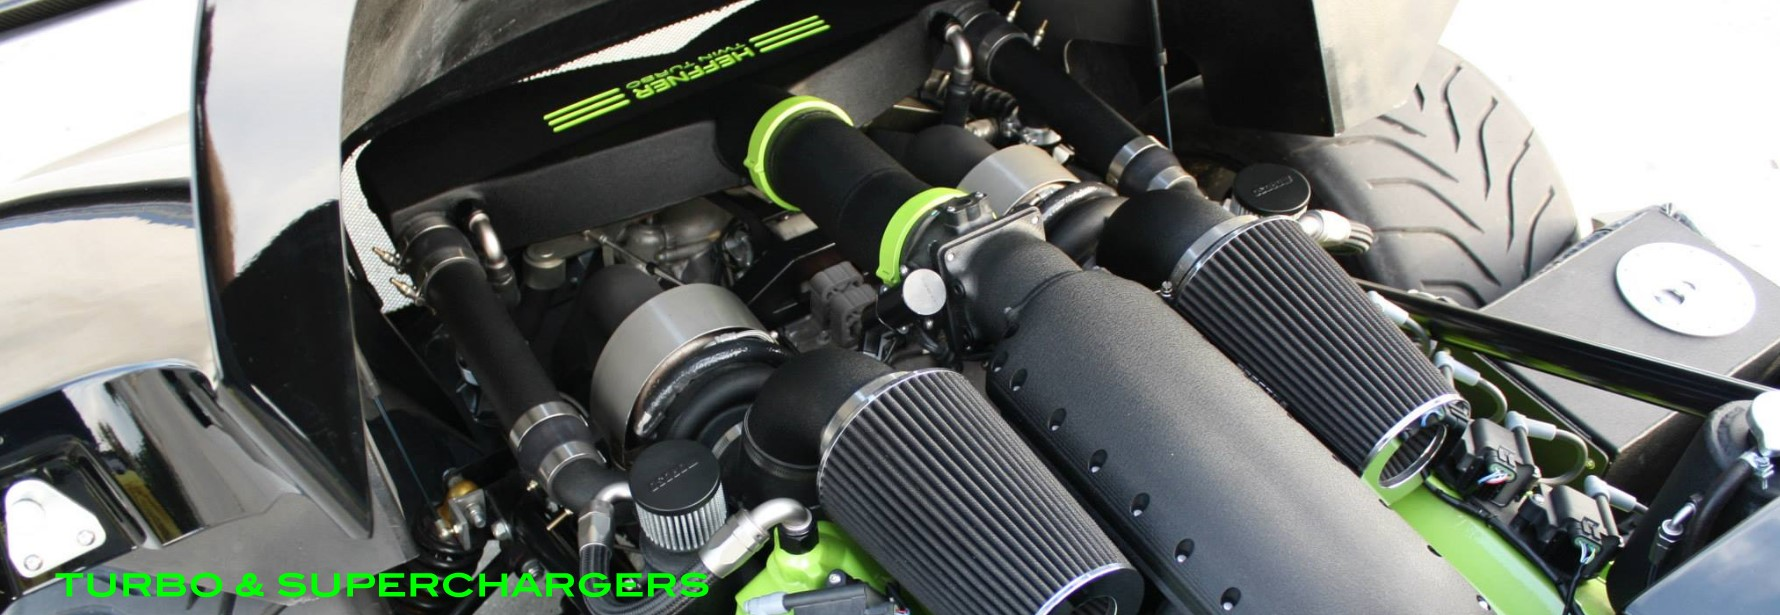 Turbo Superchargers